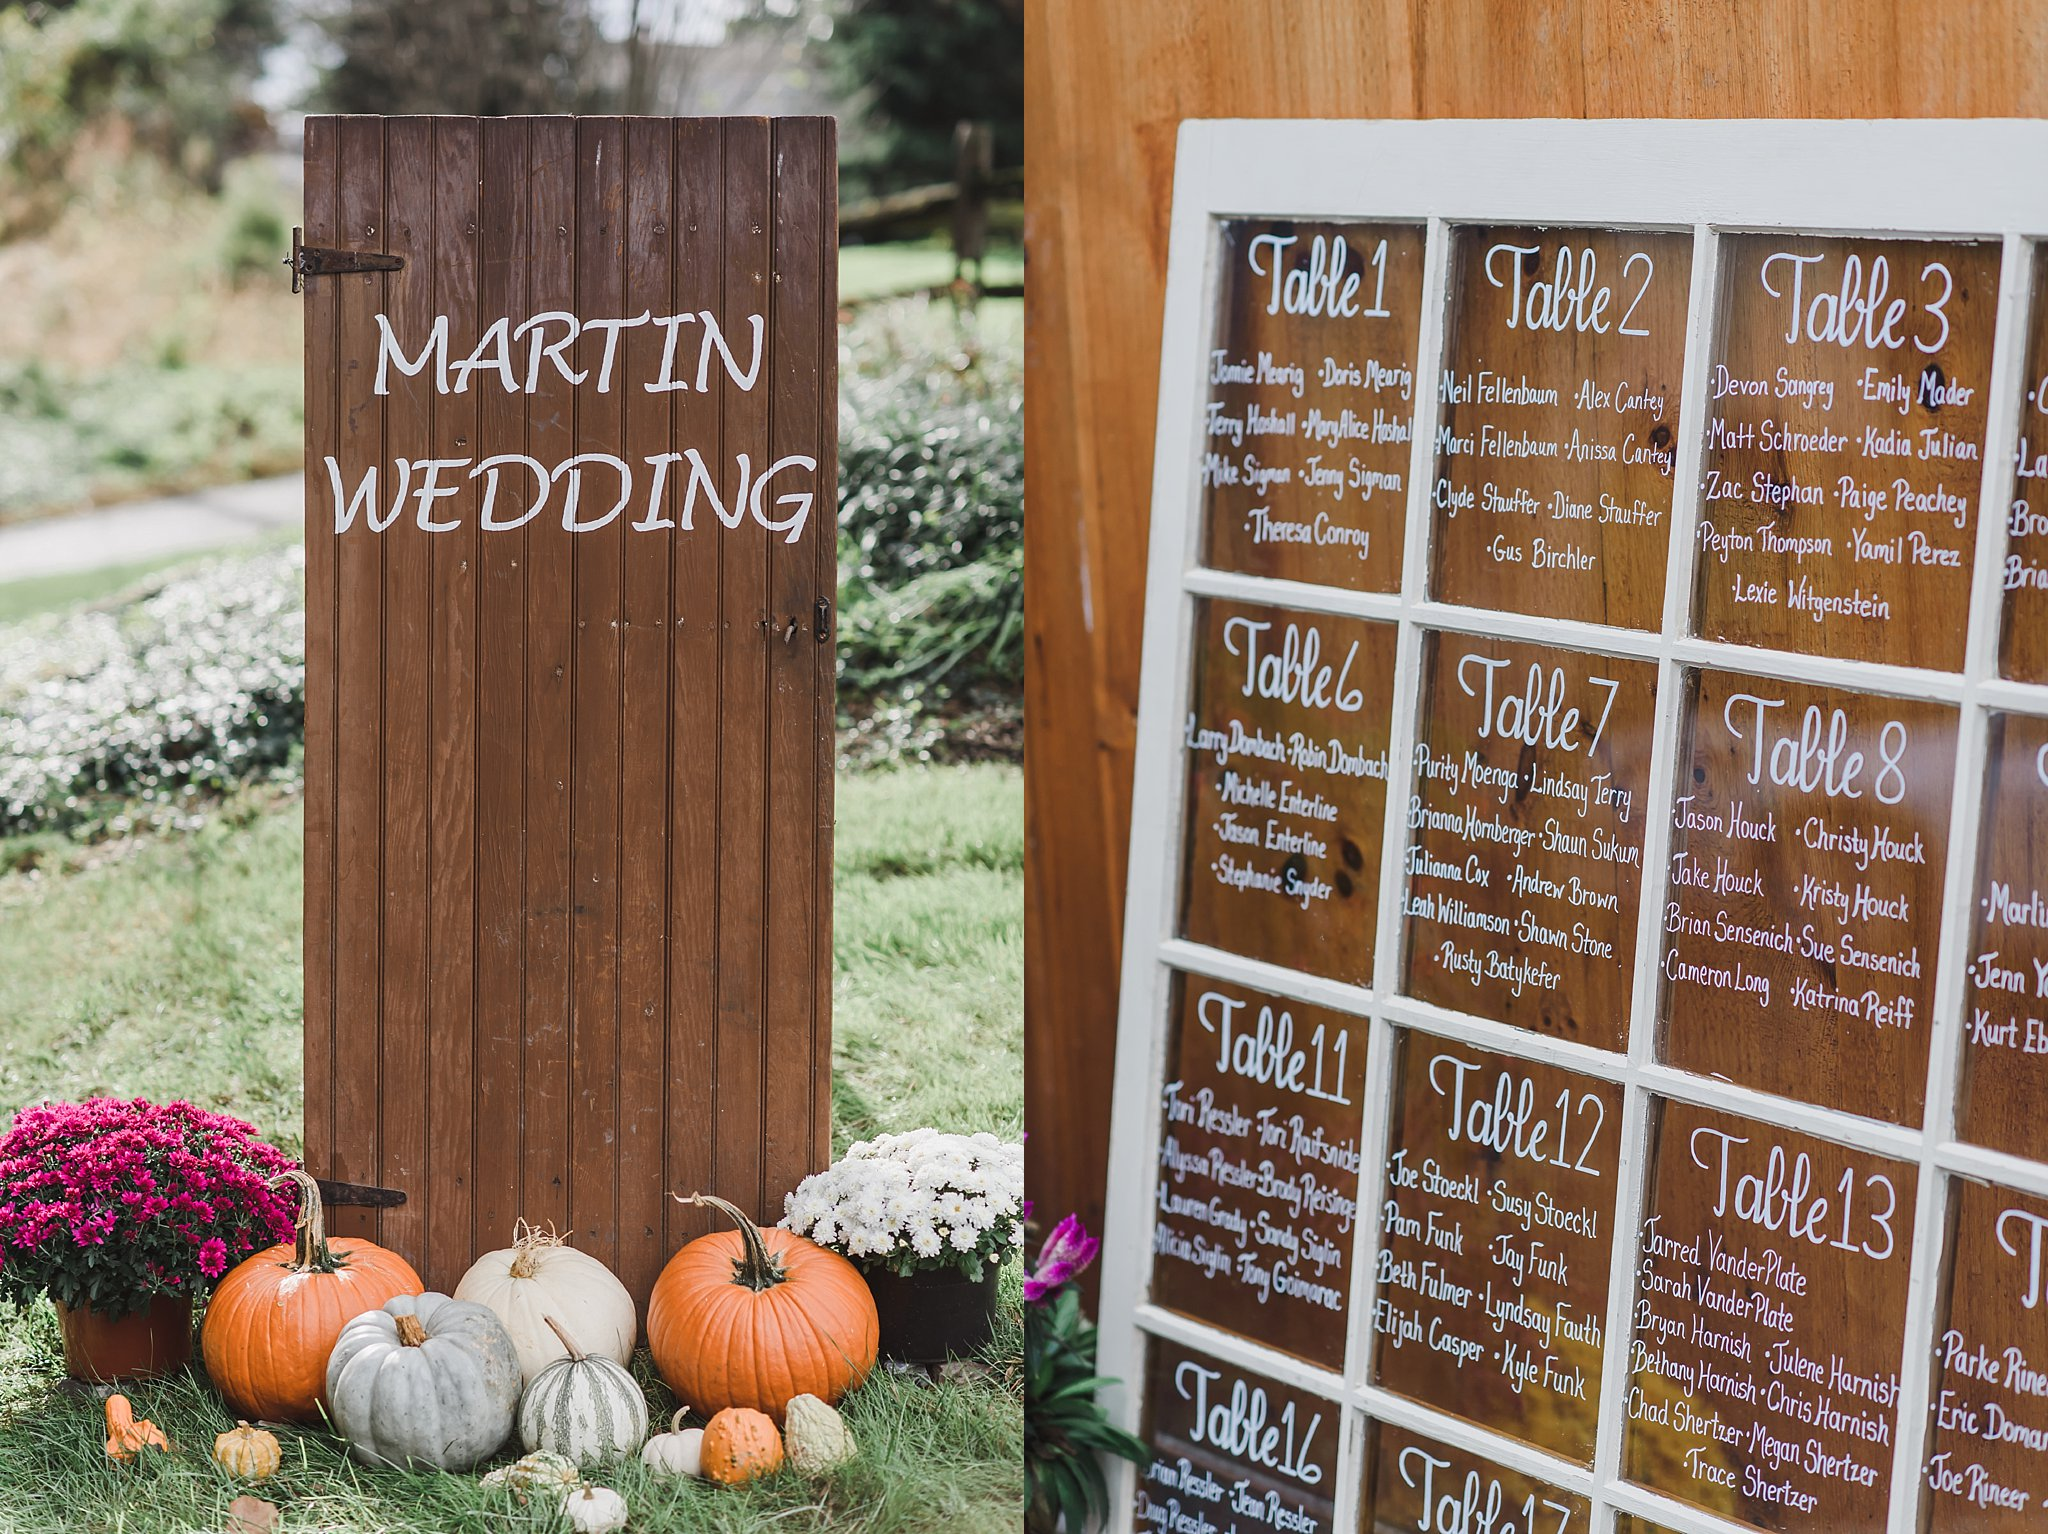 Smoker Barn Lancaster County beautiful fall wedding photography photo_0356.jpg